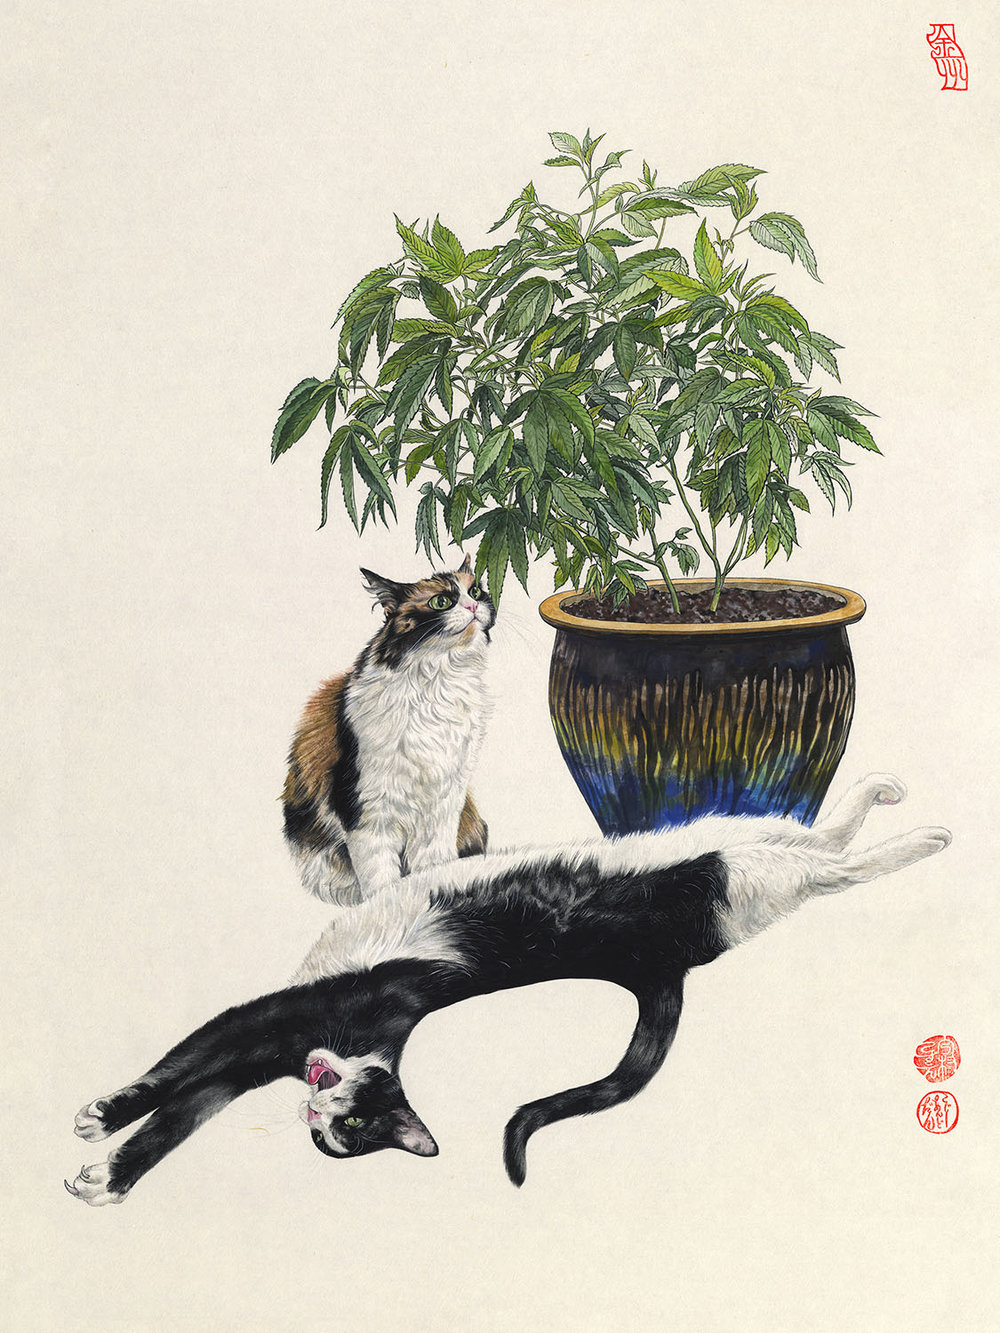 kitties_and_kush_PRINTsample_sm.jpg